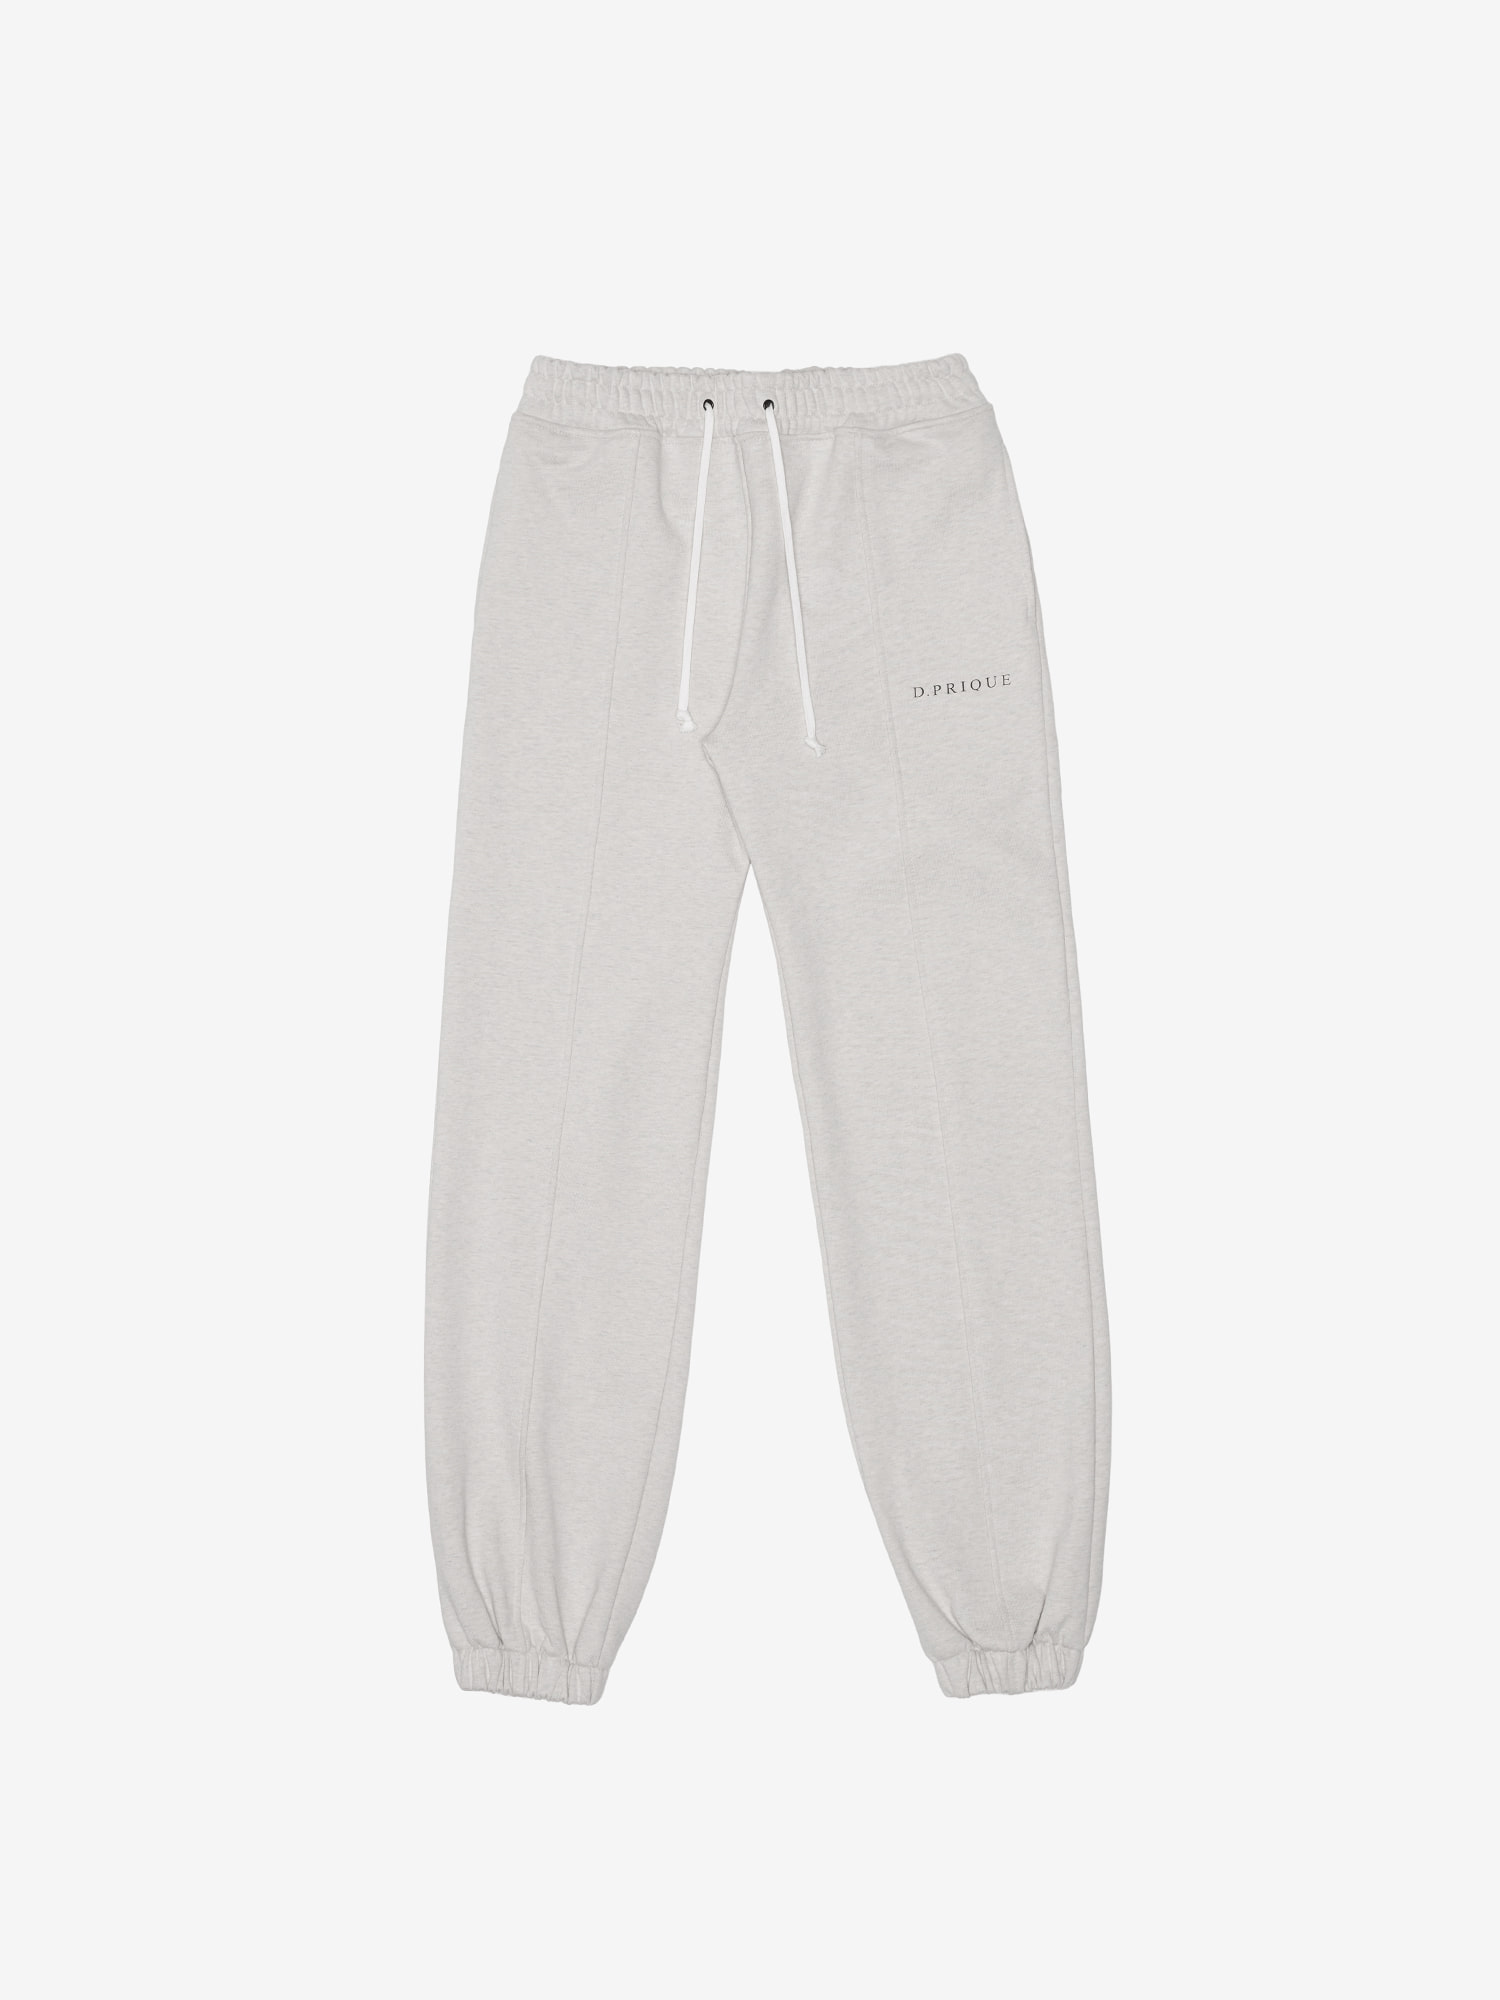 LOGO LOUNGE PANTS - Oatmeal